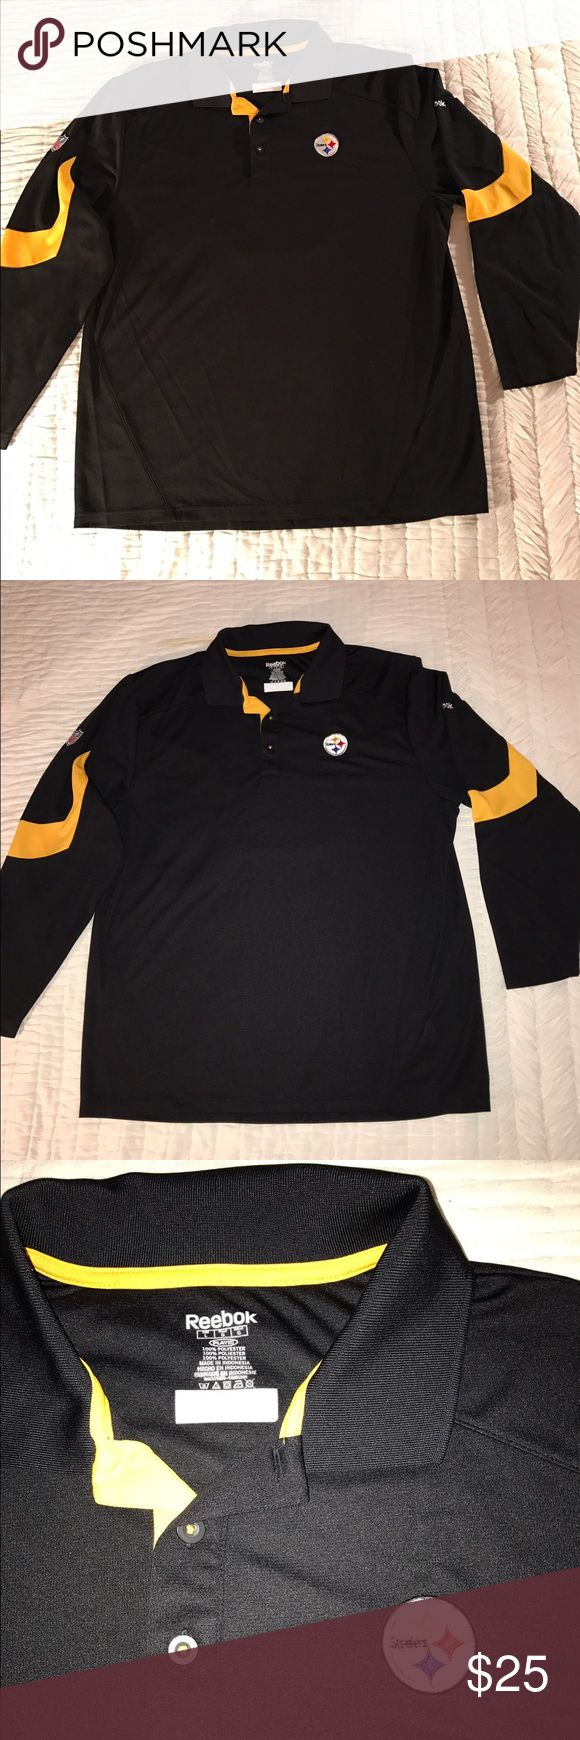 Selling this Steelers fans this is for you! Long sleeve polo. on Poshmark! My username is: dlewis111. #shopmycloset #poshmark #fashion #shopping #style #forsale #NFL #Other